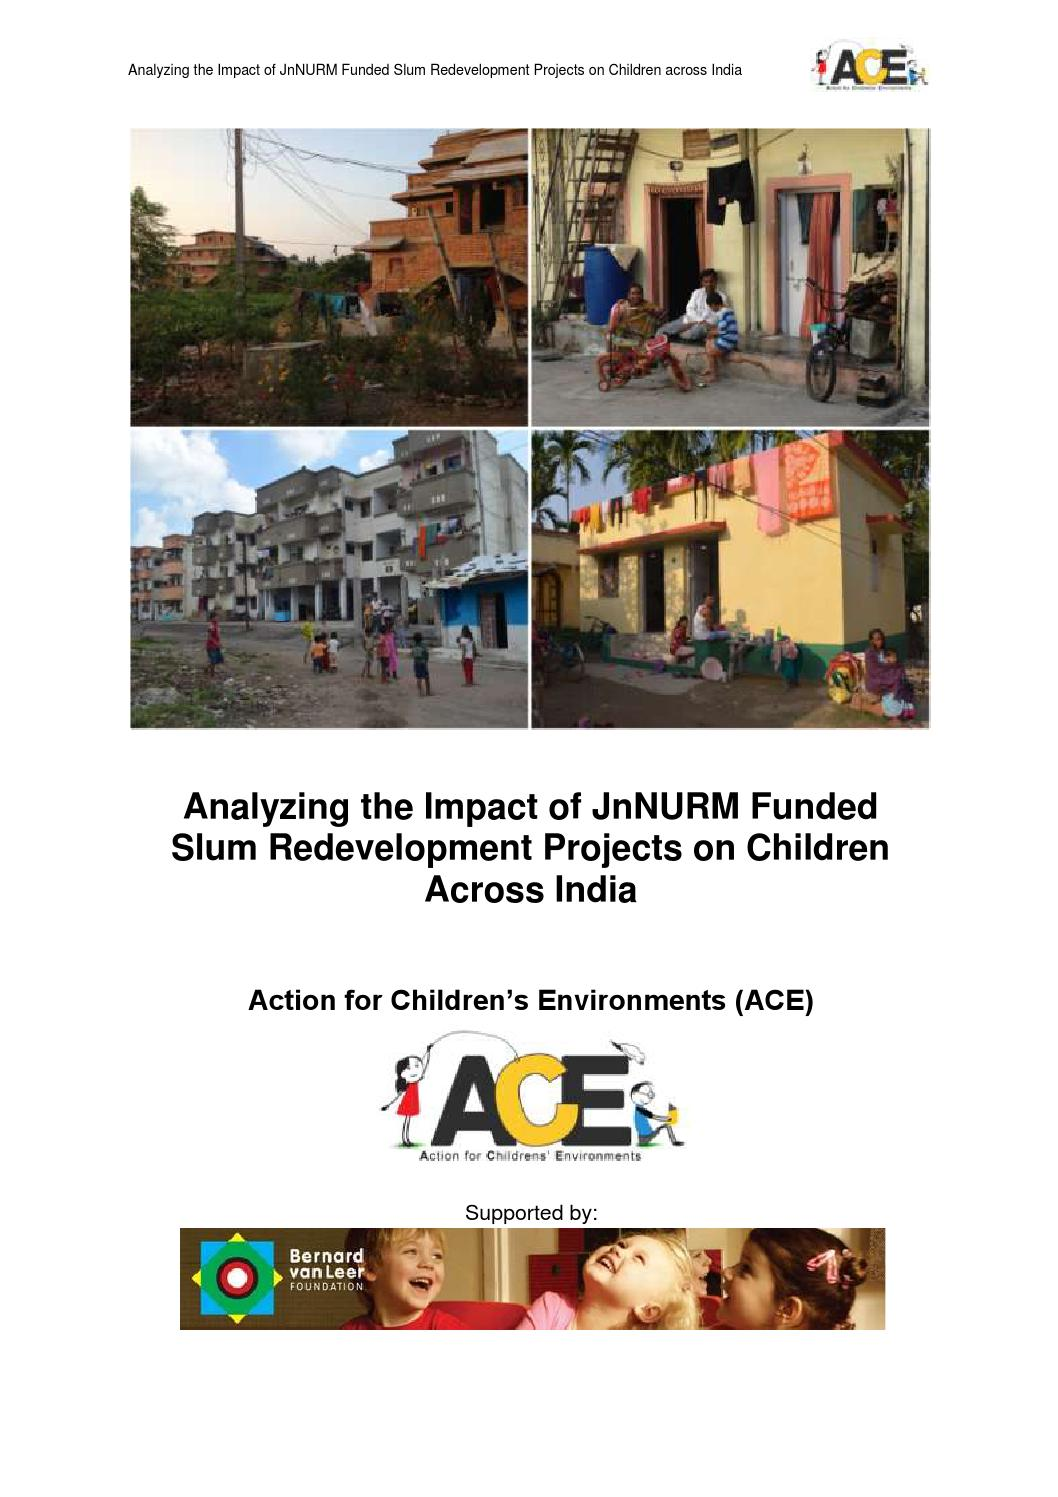 Analyzing The Impact Of Jnnurm Funded Slum Redevelopment On Children Biogas Plant Or Gobar Gasplant Diagram Urdu Download Across India Ace 2013 By Bernard Van Leer Foundation Issuu